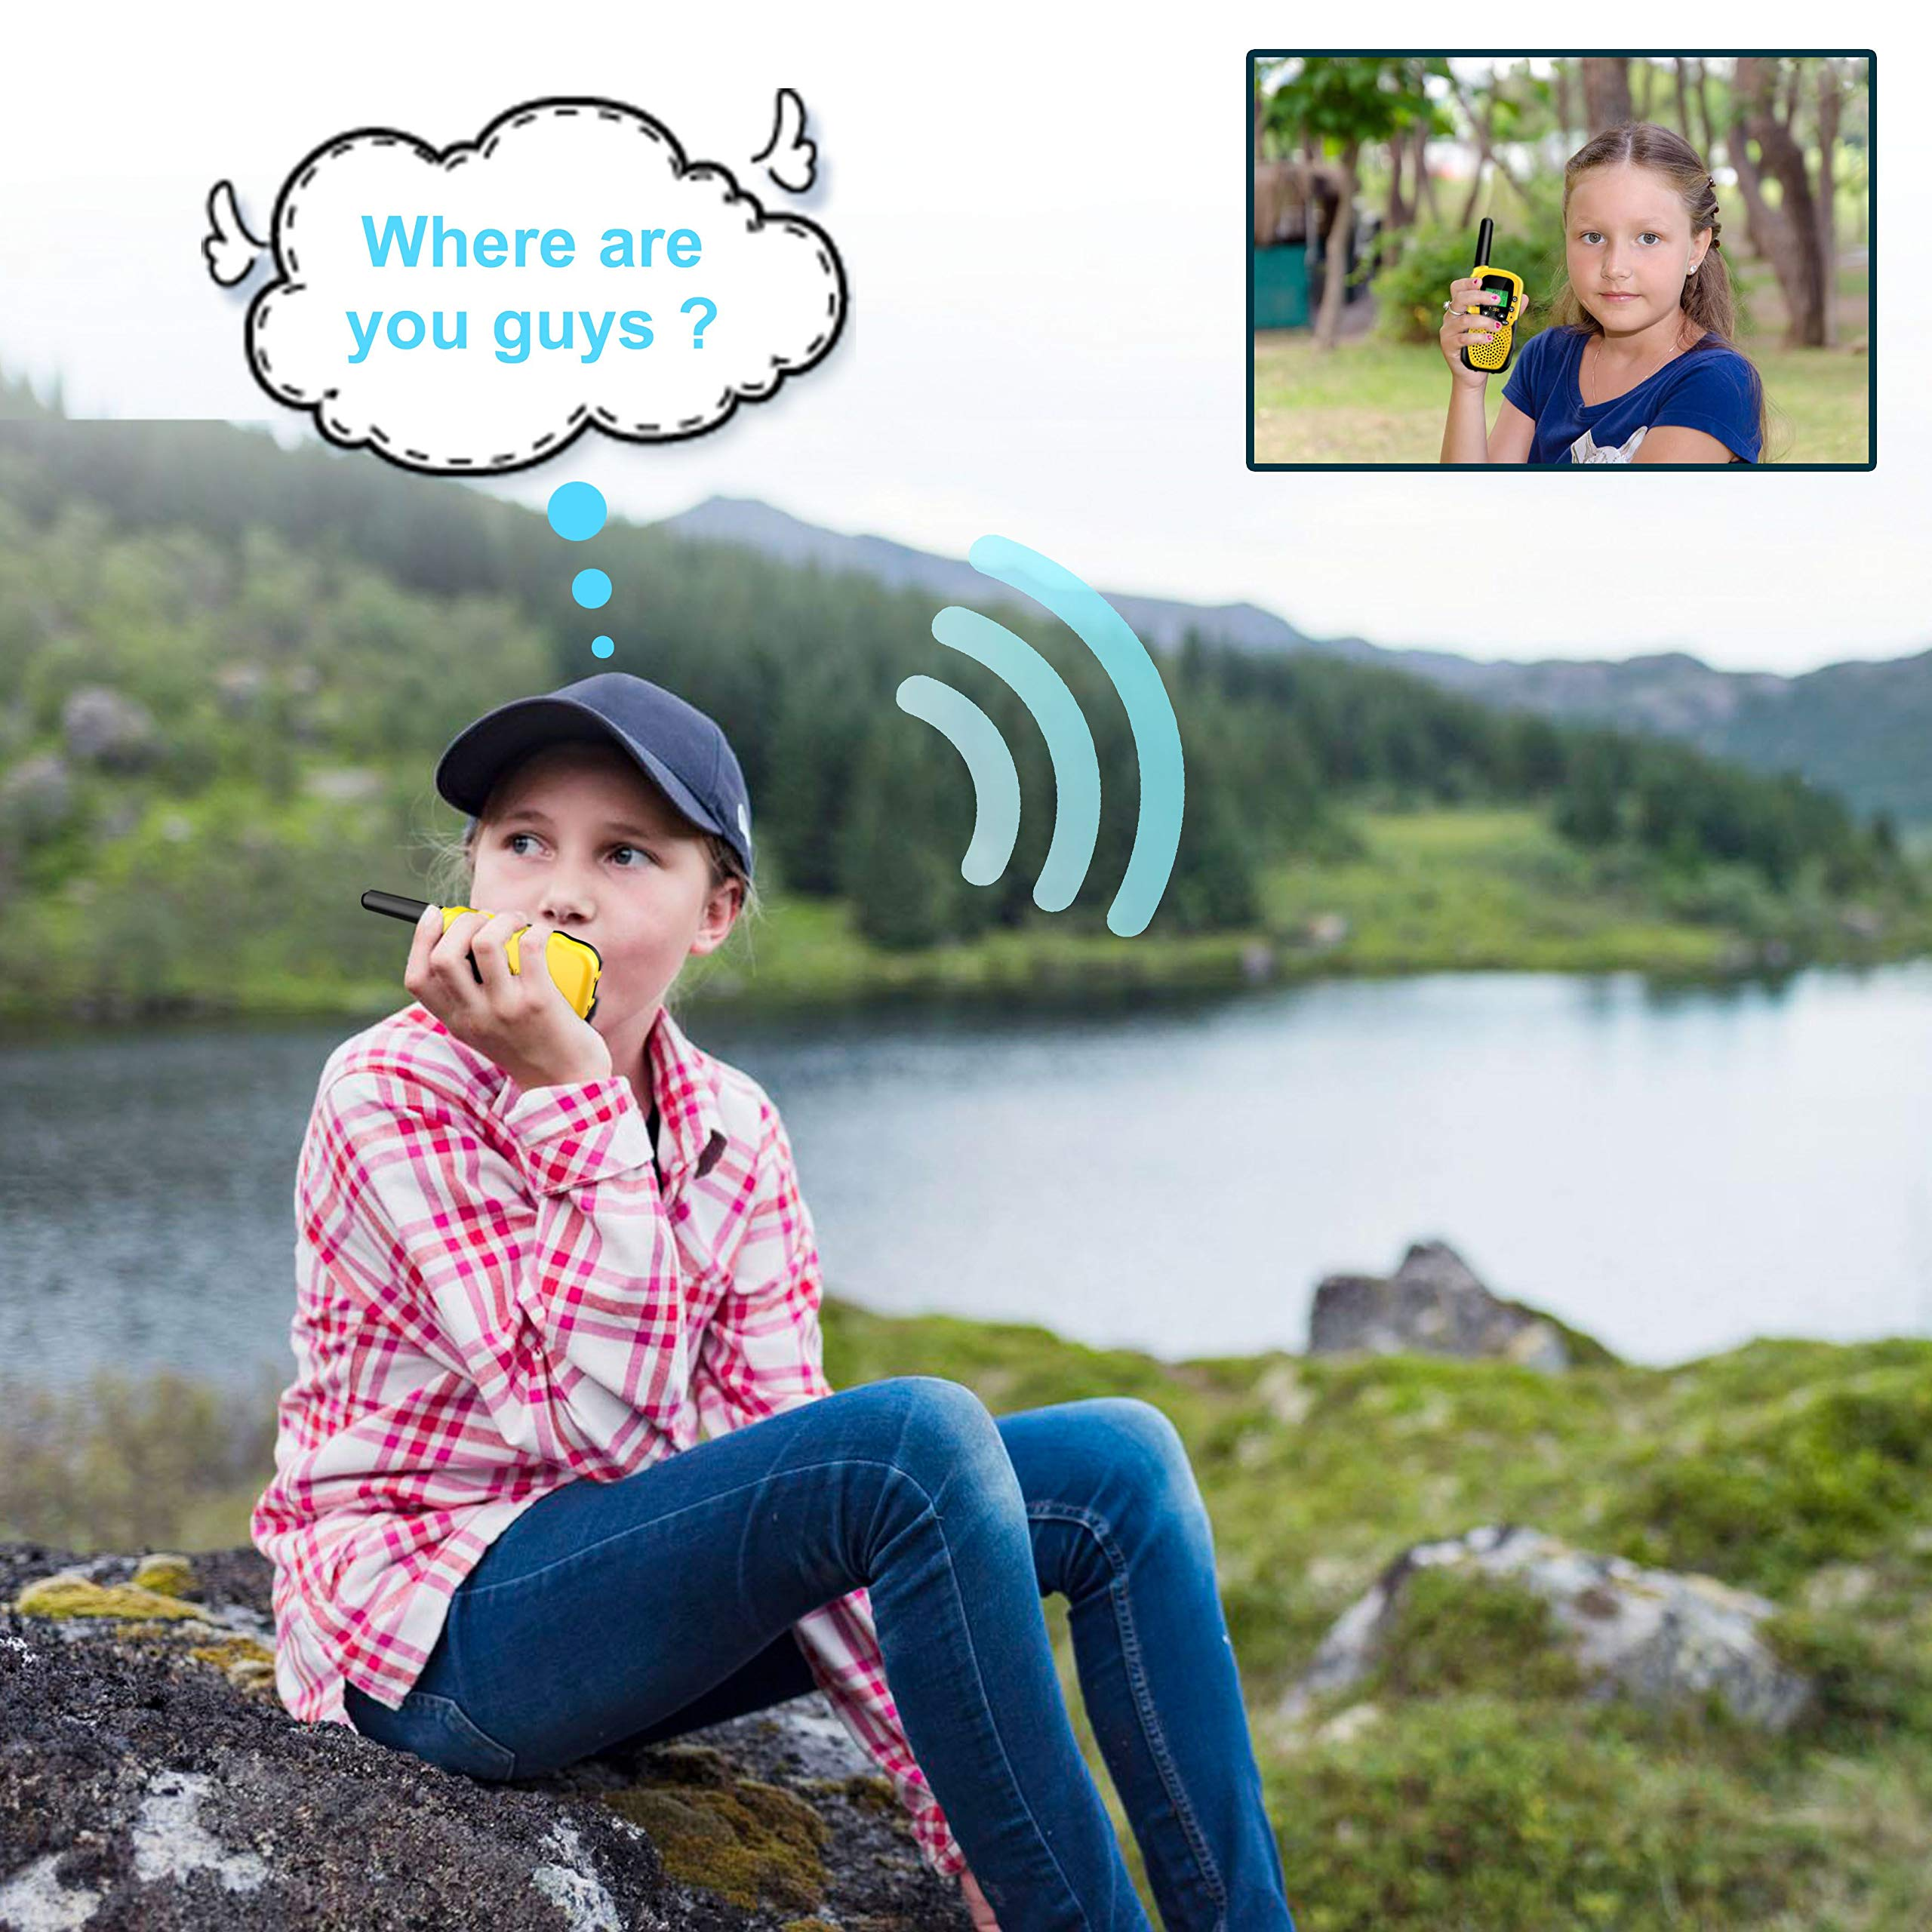 Walkies Talkies for Kids, 22 Channels FRS/GMRS UHF Two Way Radios 4 Miles Handheld Mini Kids Walkie Talkies for Kids Best Gifts Kids Toys Built in Flashlight by JimBest1970 (Image #4)